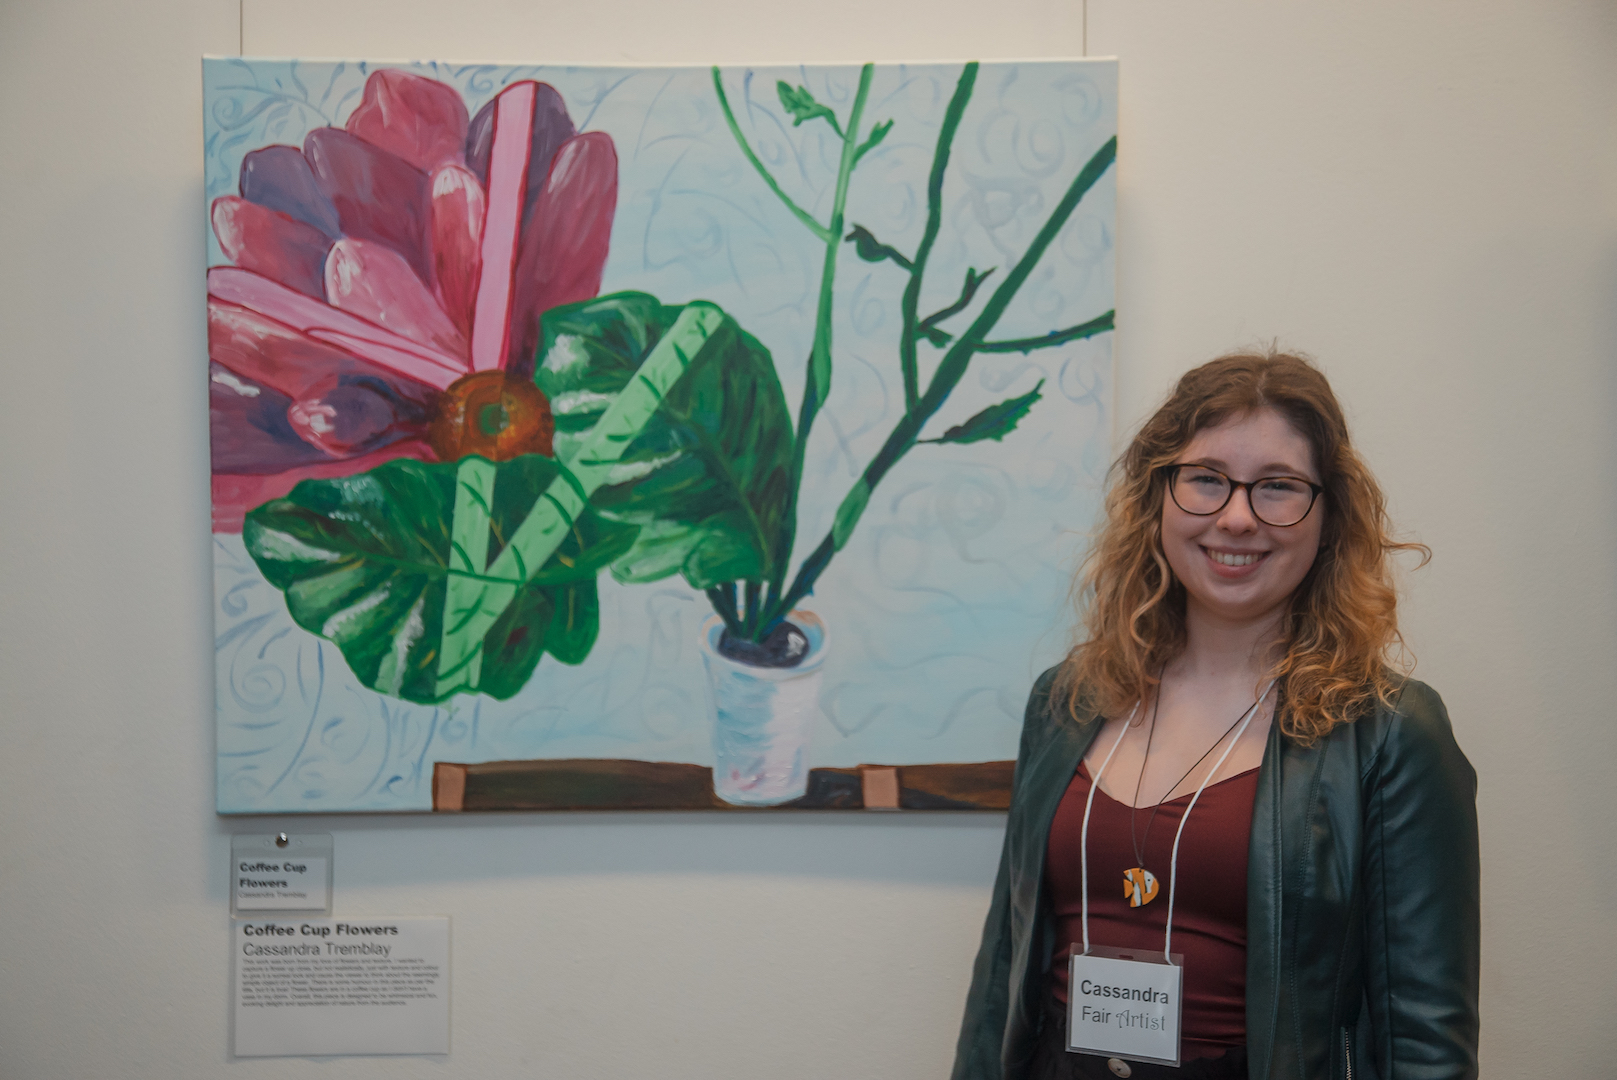 Female student standing in front, on right side of her project arkwork/painting